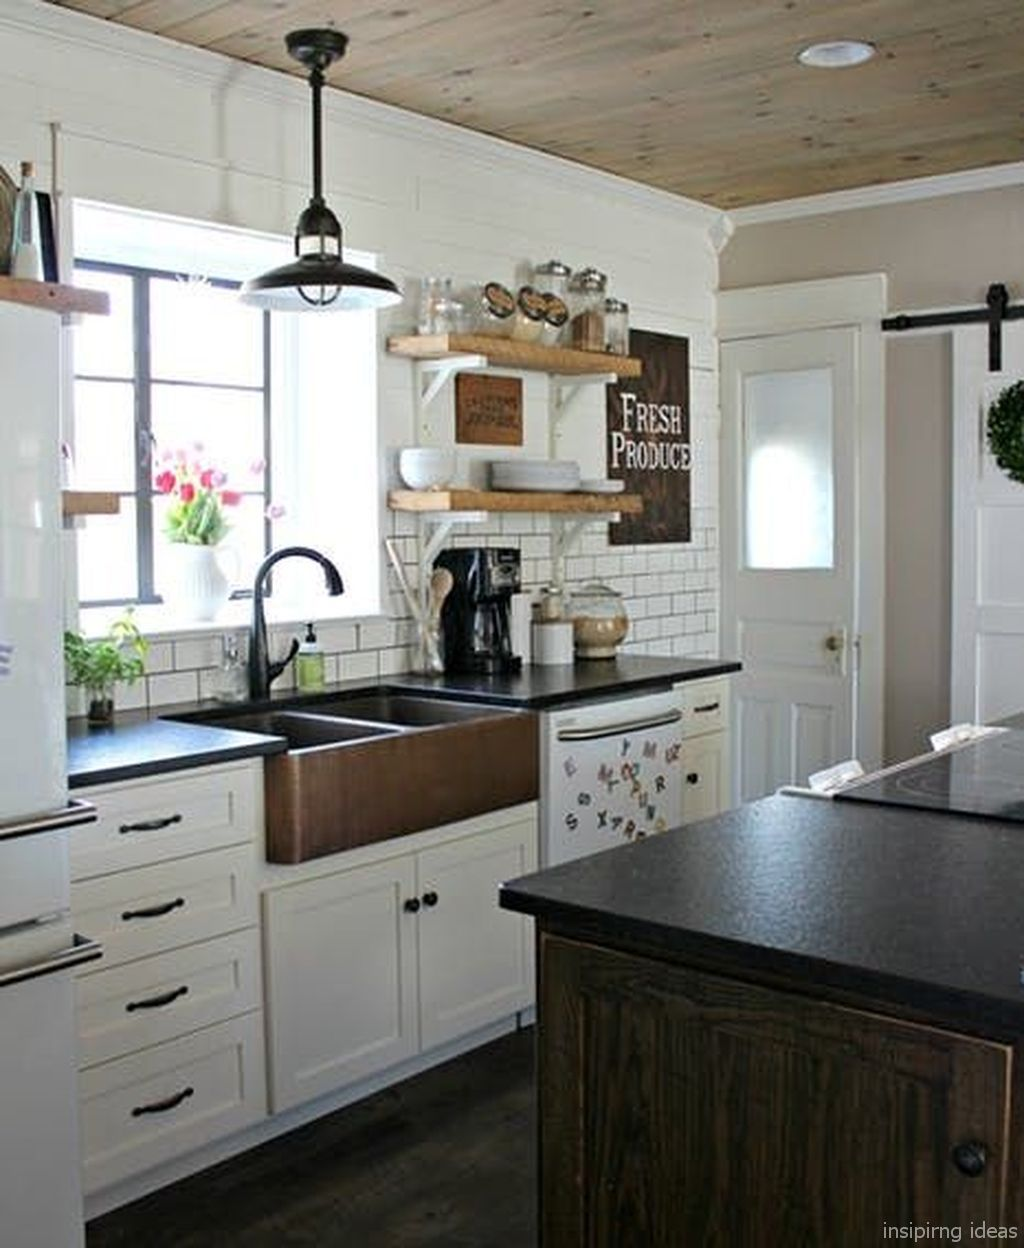 Farmhouse Kitchen Backsplash Ideas: 80 Beautiful Modern Farmhouse Kitchen Backsplash Ideas